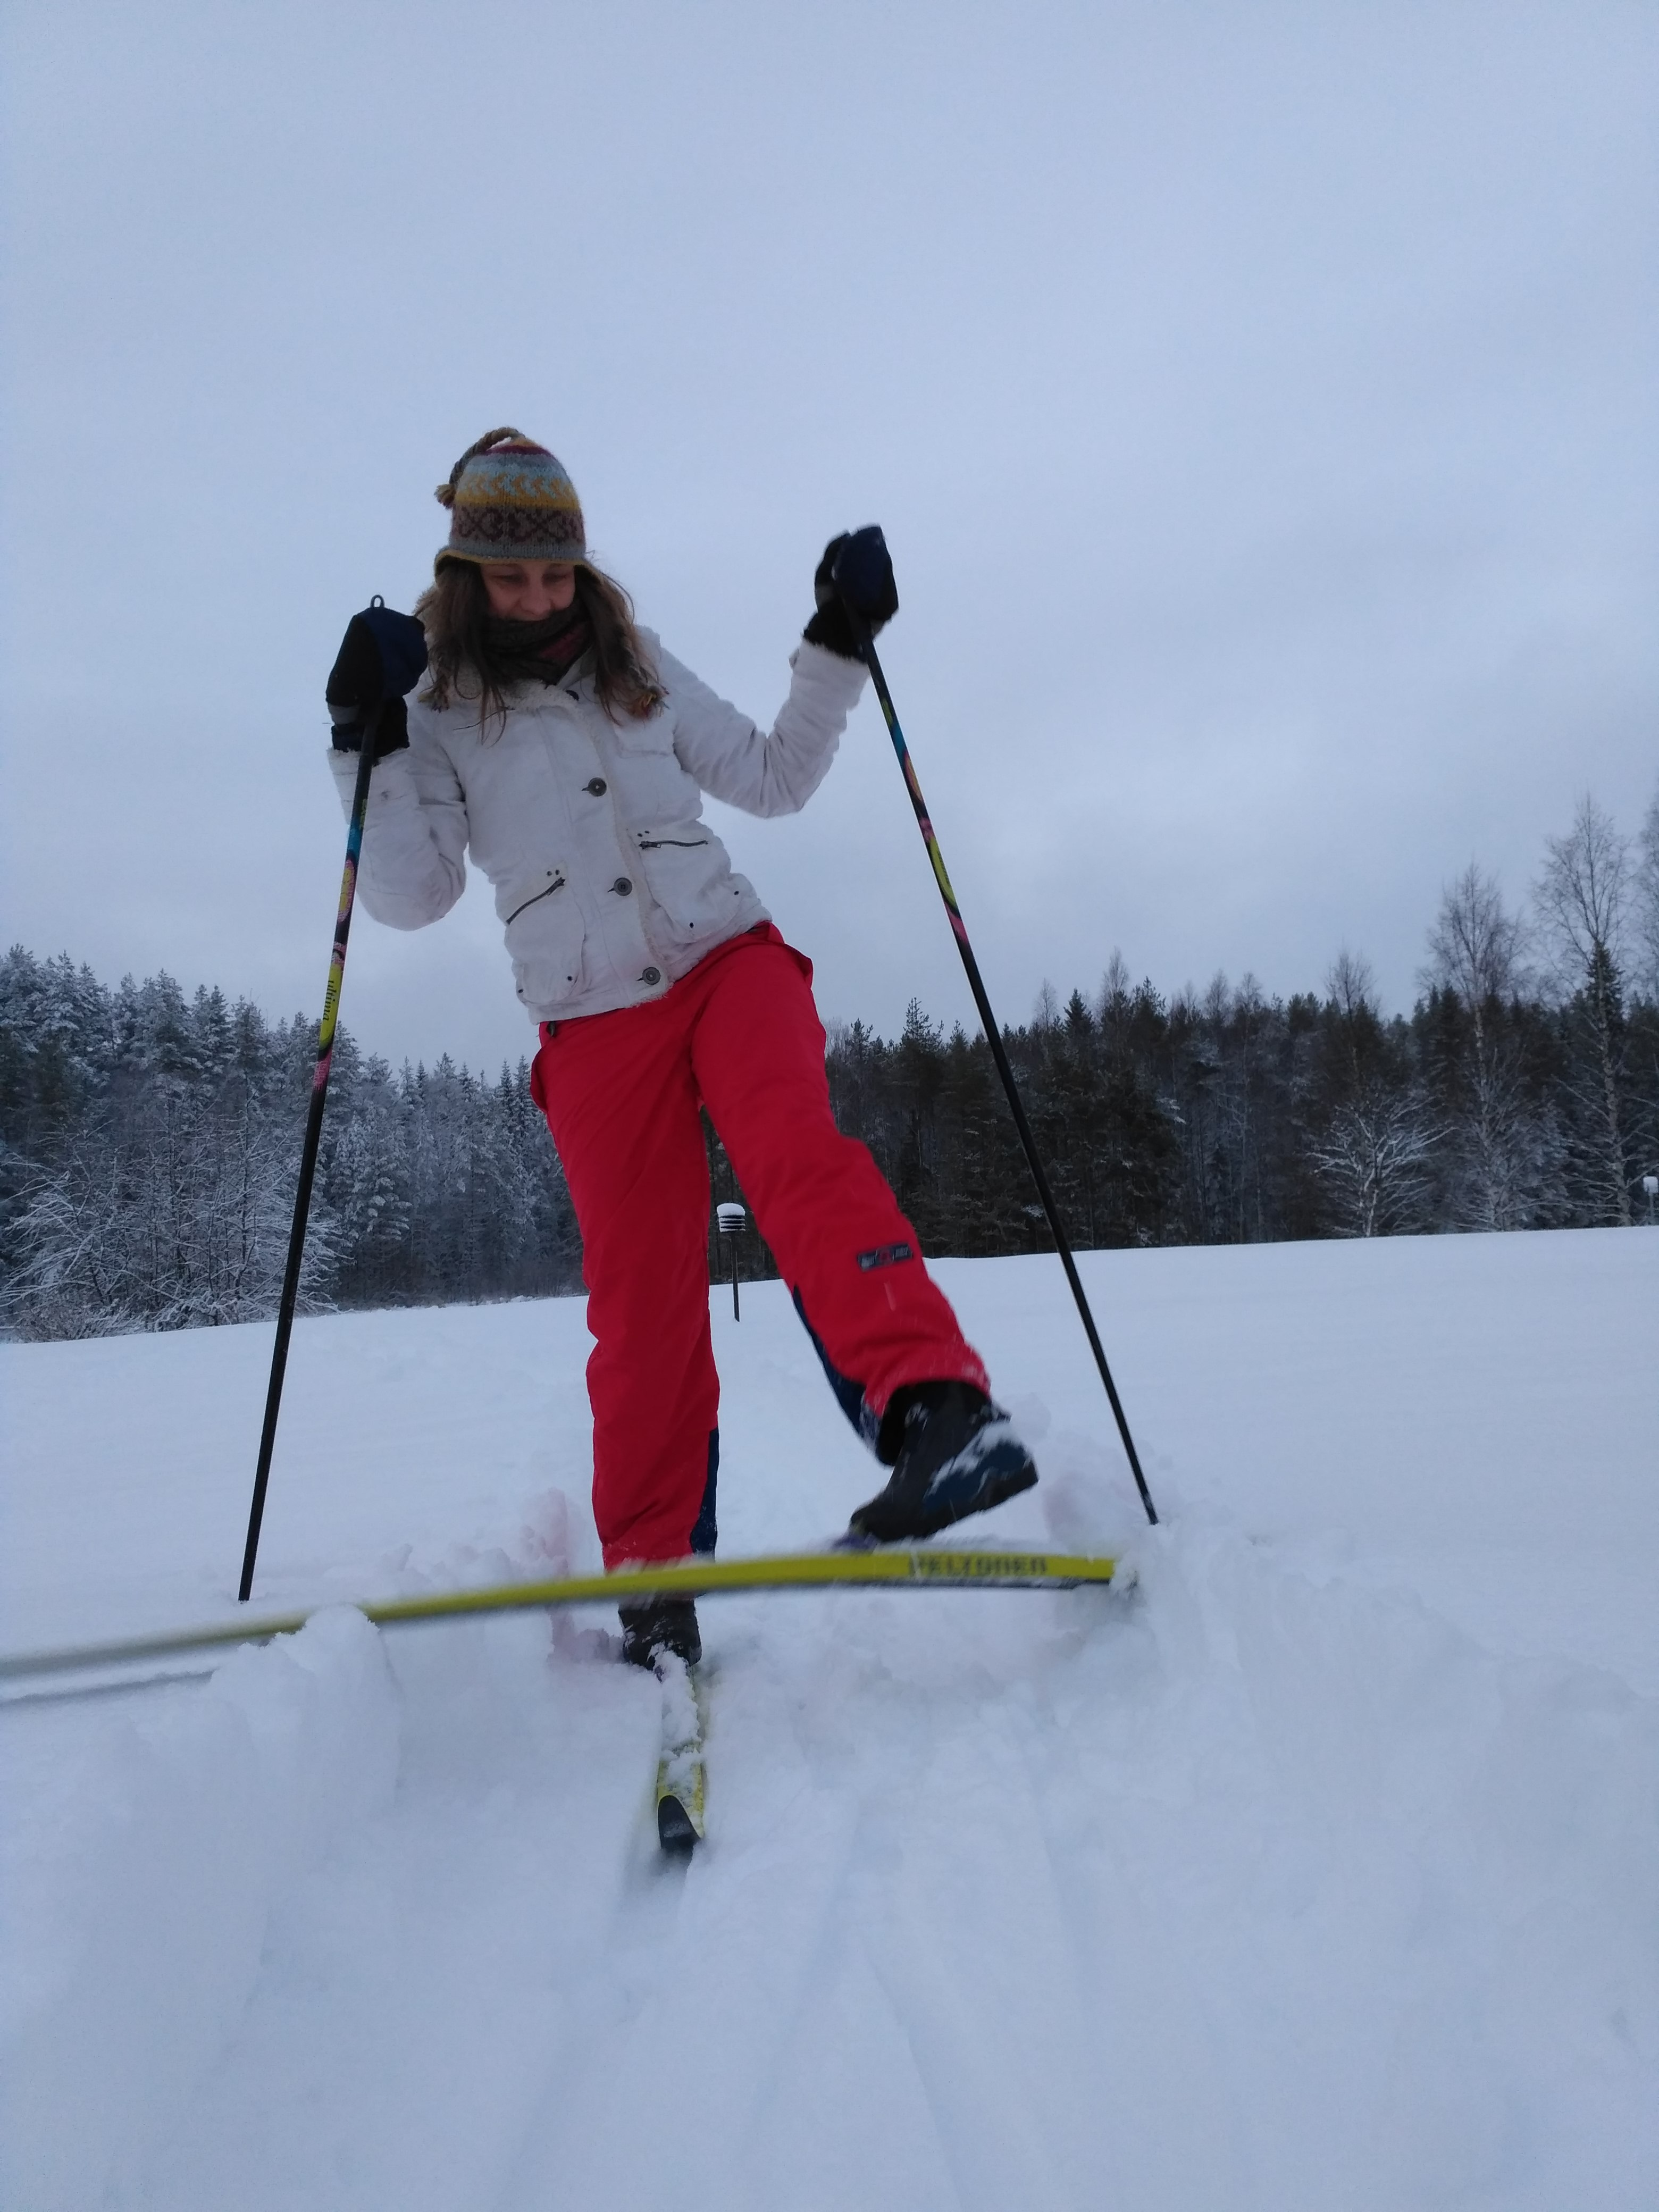 Skiing practise every once in a while   Photo by Mika Majaranta